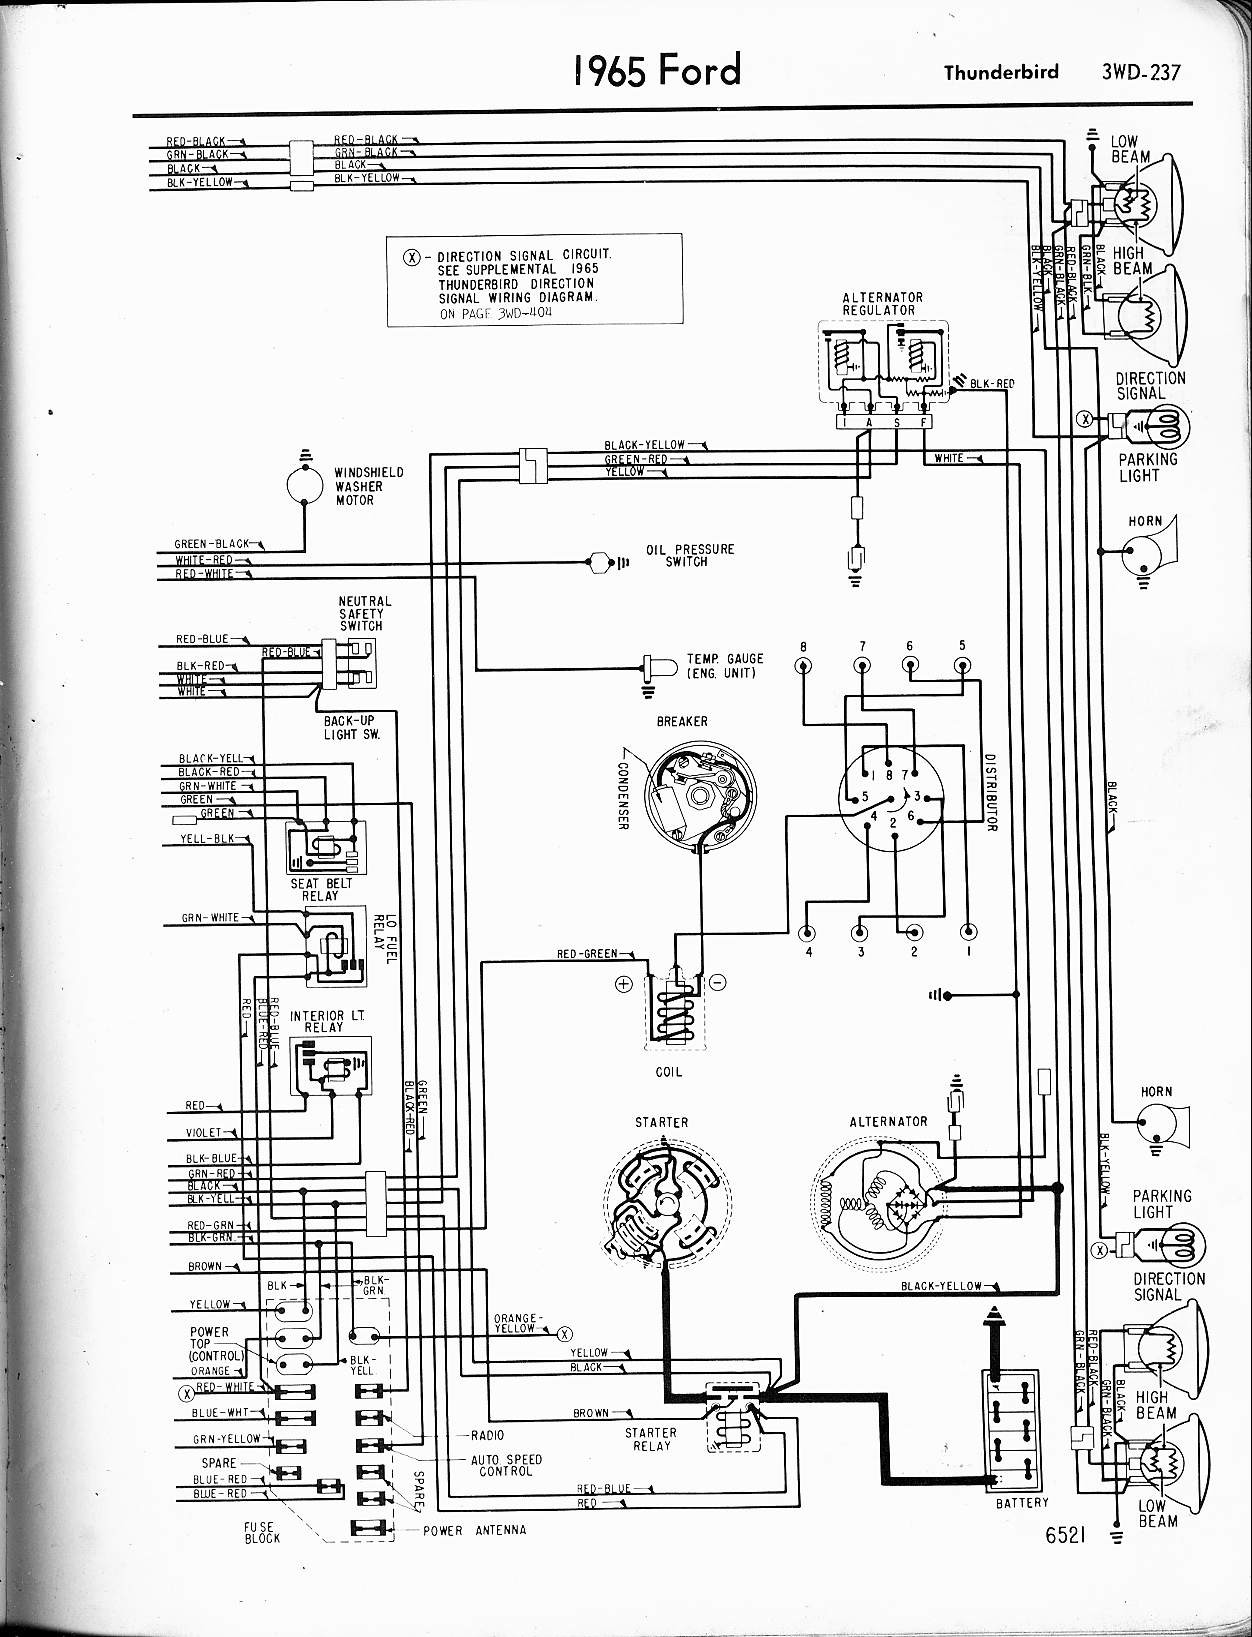 1969 Corvette Wiring Diagram Manual Reprint - WIRE Center •